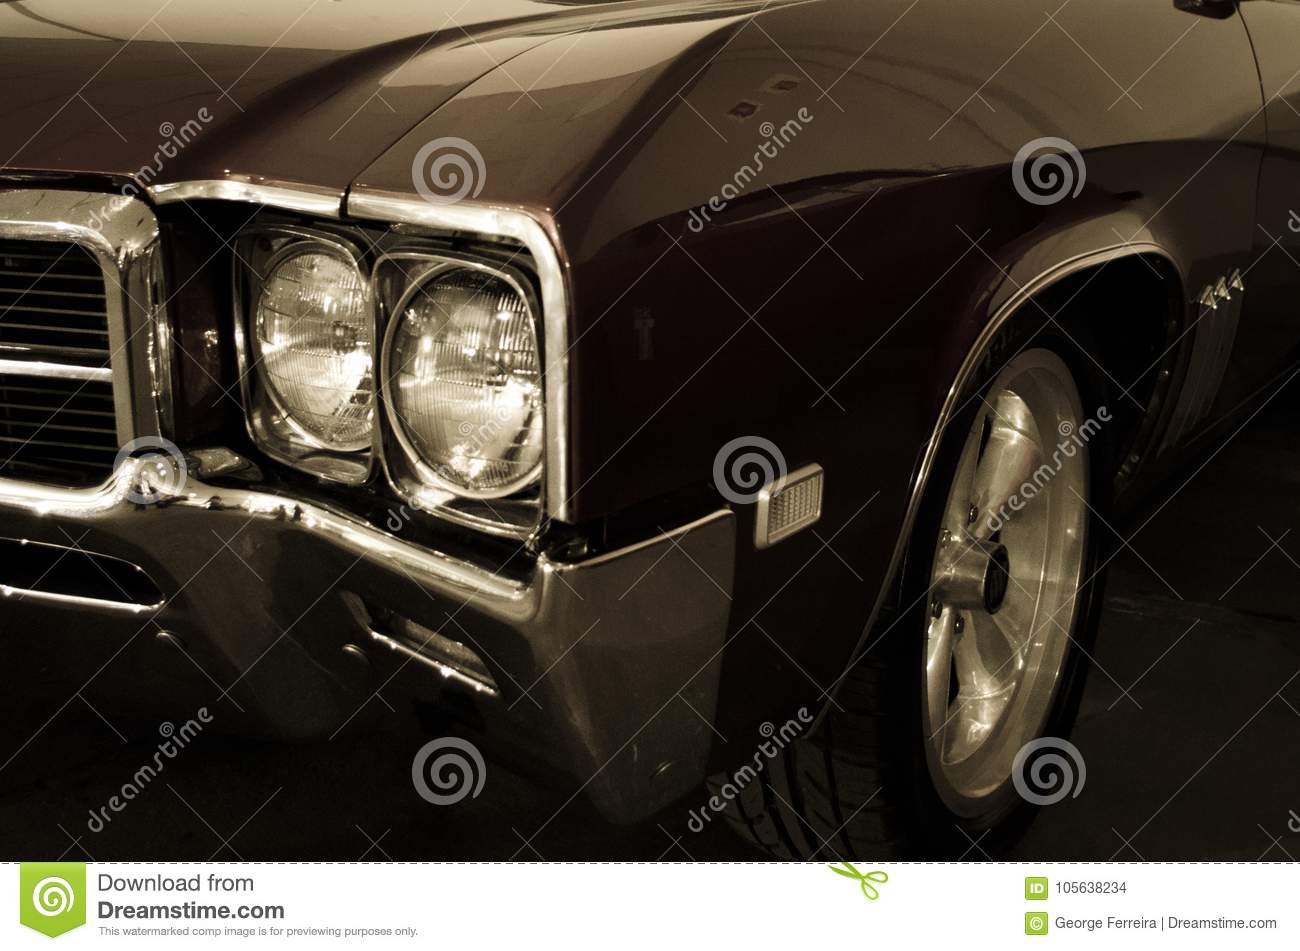 Cool old muscle car stock photo. Image of stong, cool - 105638234